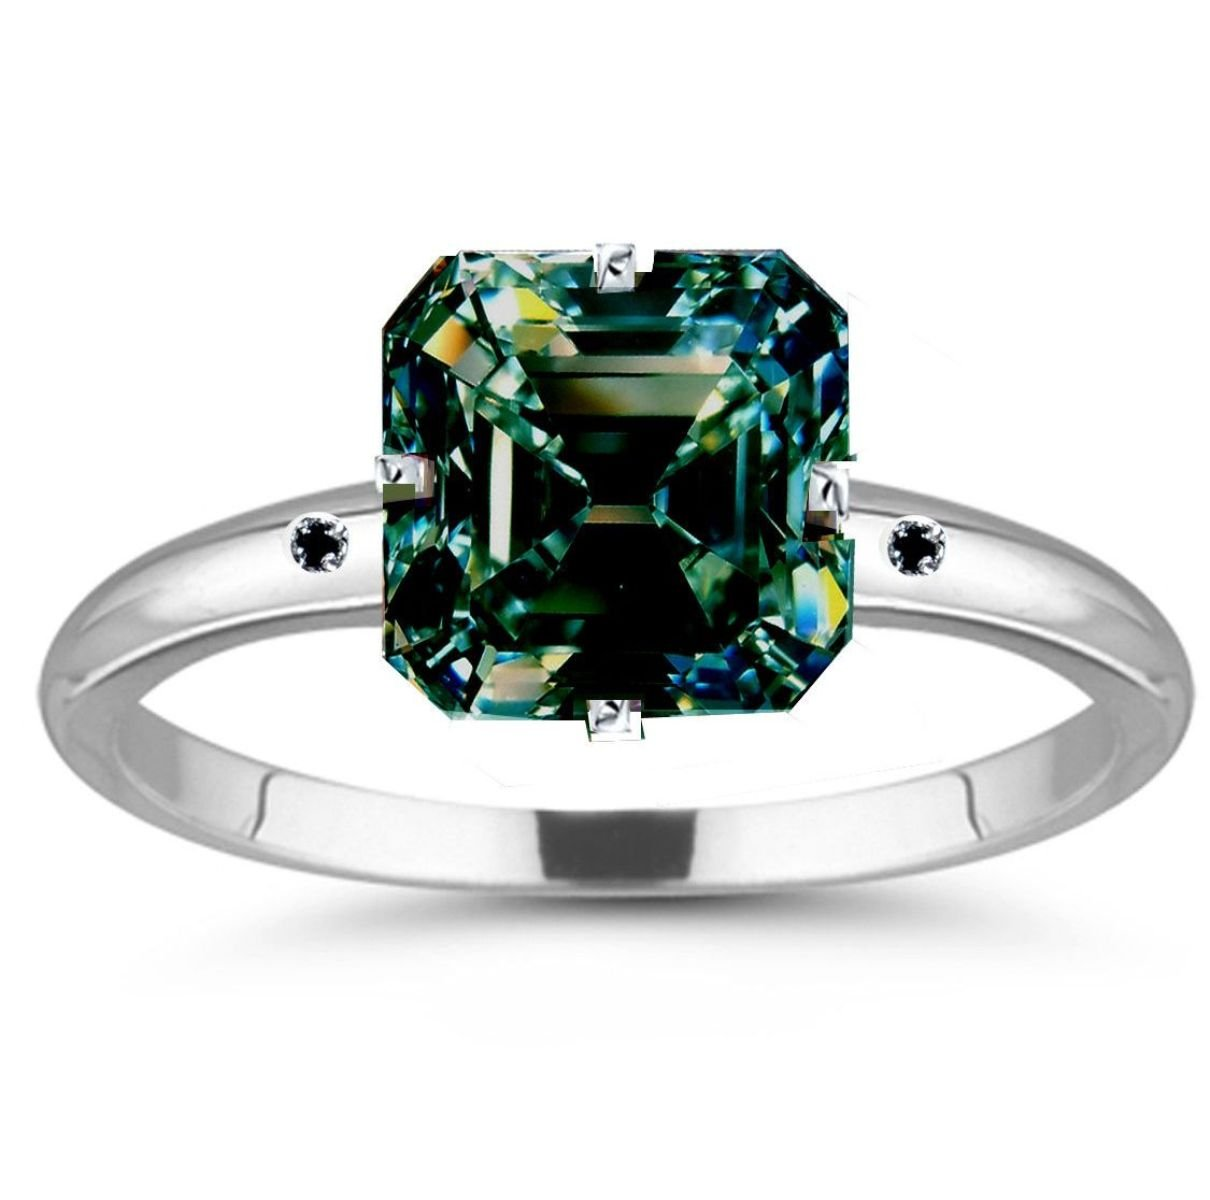 RINGJEWEL 13.30 ct SI2 Emerald Real Moissanite Engagement Silver Plated Ring Blue Green Color Size 7